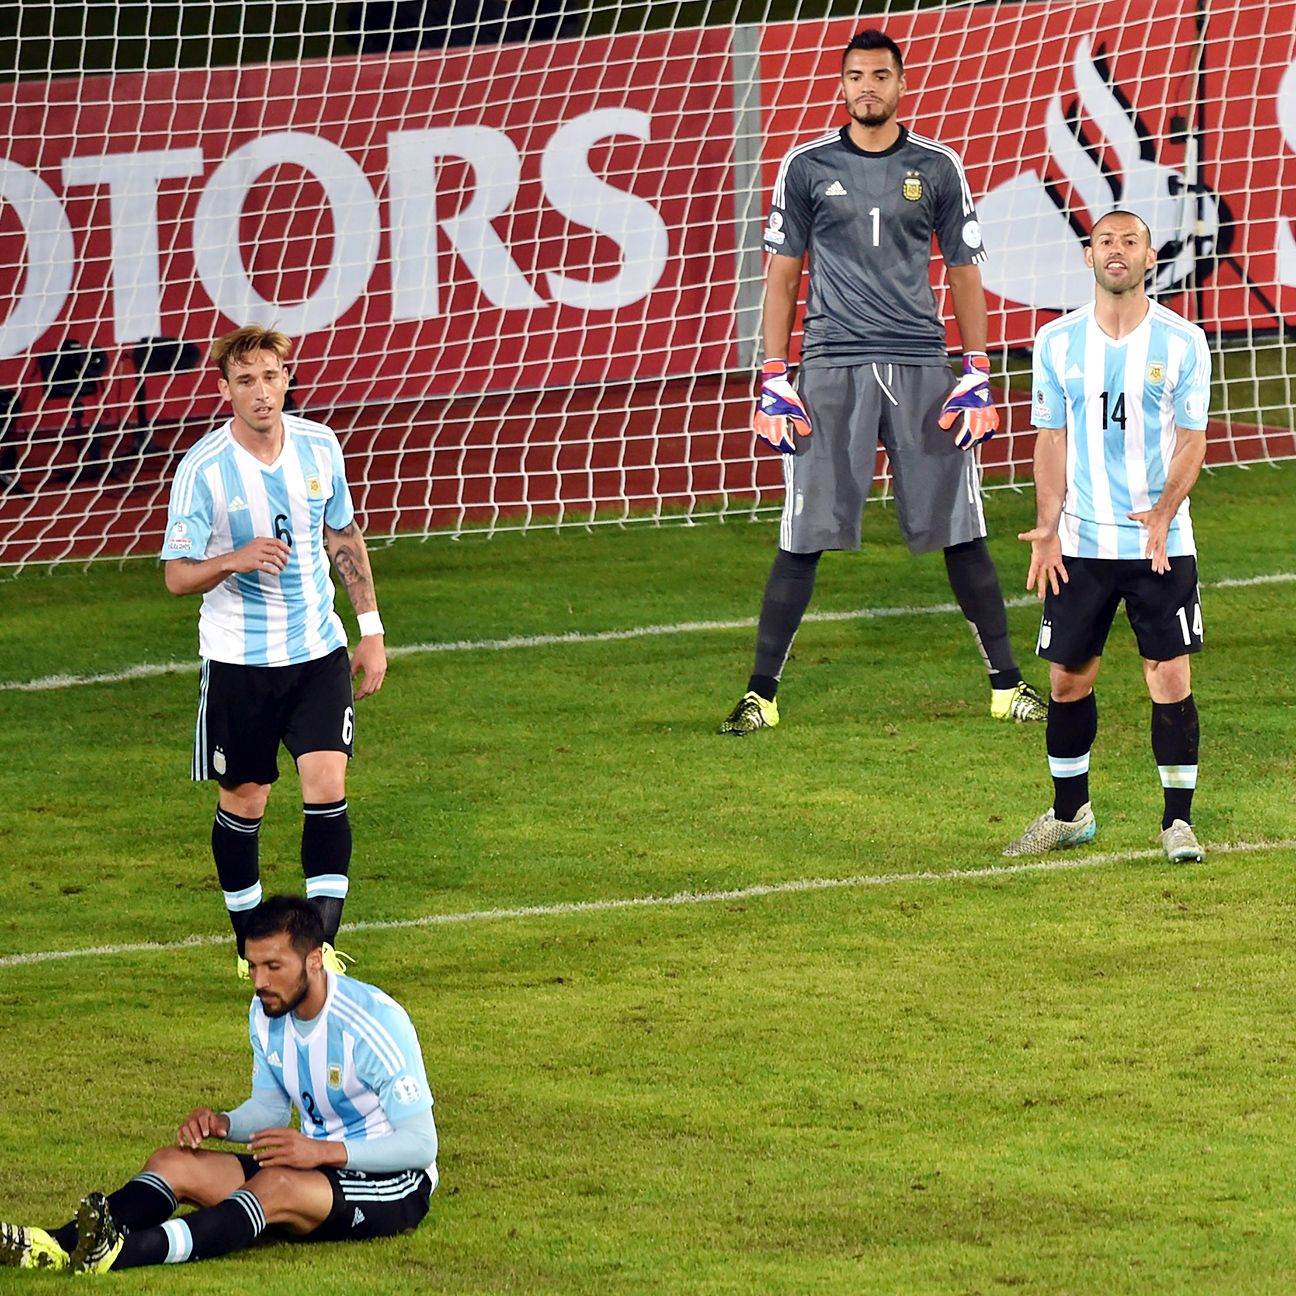 Argentina's inability to come to grips with Paraguay's second half changes bodes poorly for the <i>Albiceleste</i> in their key clash with Uruguay.